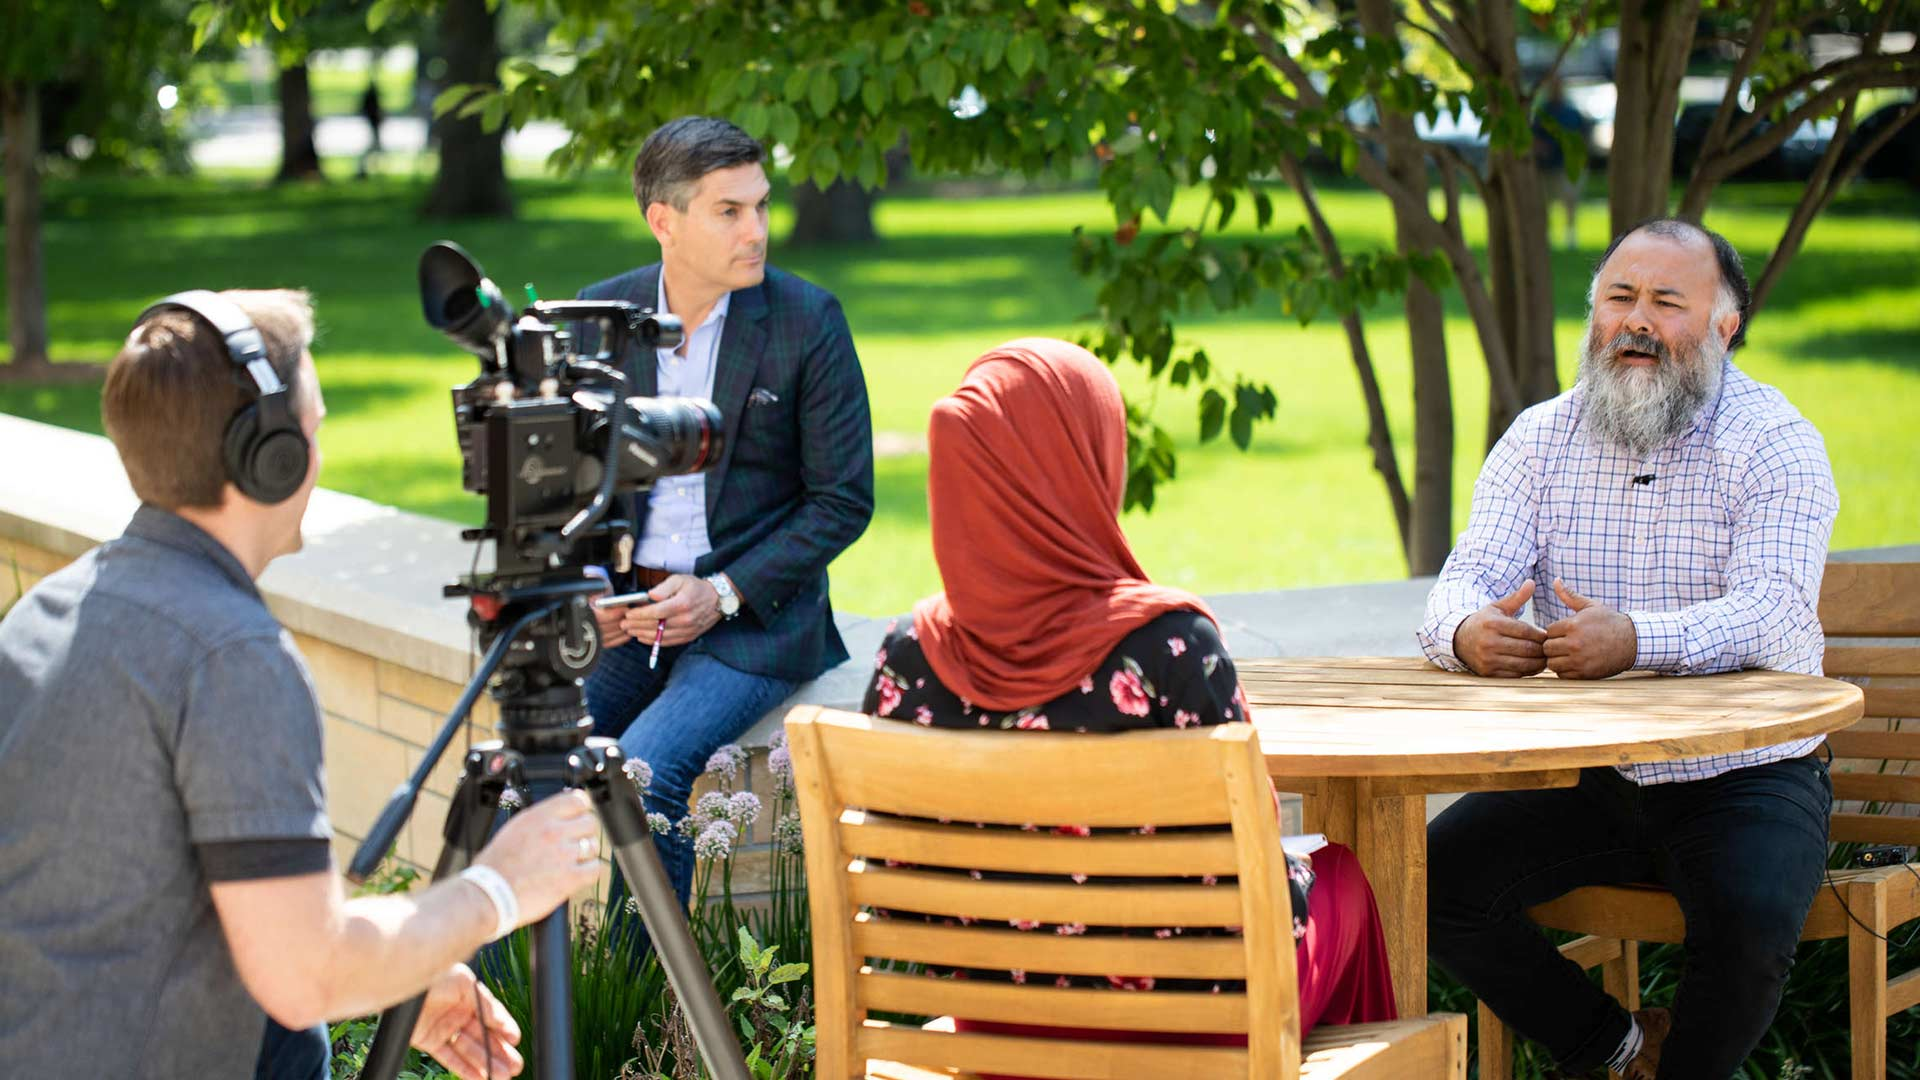 A ThreeSixty Journalism student interviews a person as part of the annual summer camp.